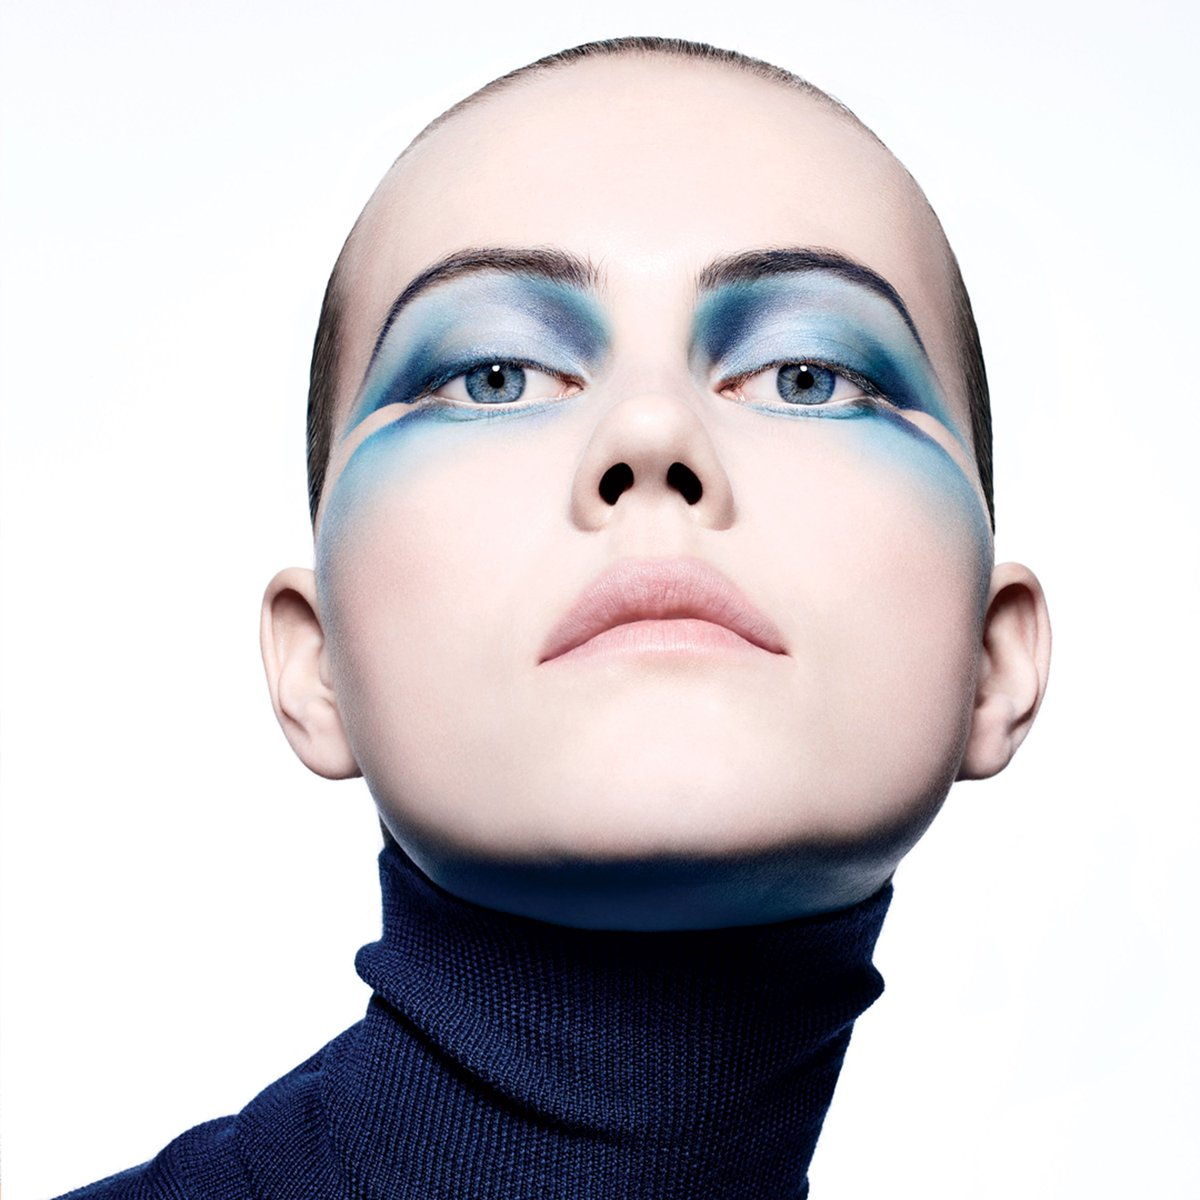 The art of color book - Dior On Twitter Dior The Art Of Color A Book That Pays Tribute To Dior Makeup Colour More Https T Co Qhksdjqc0h Diortheartofcolor